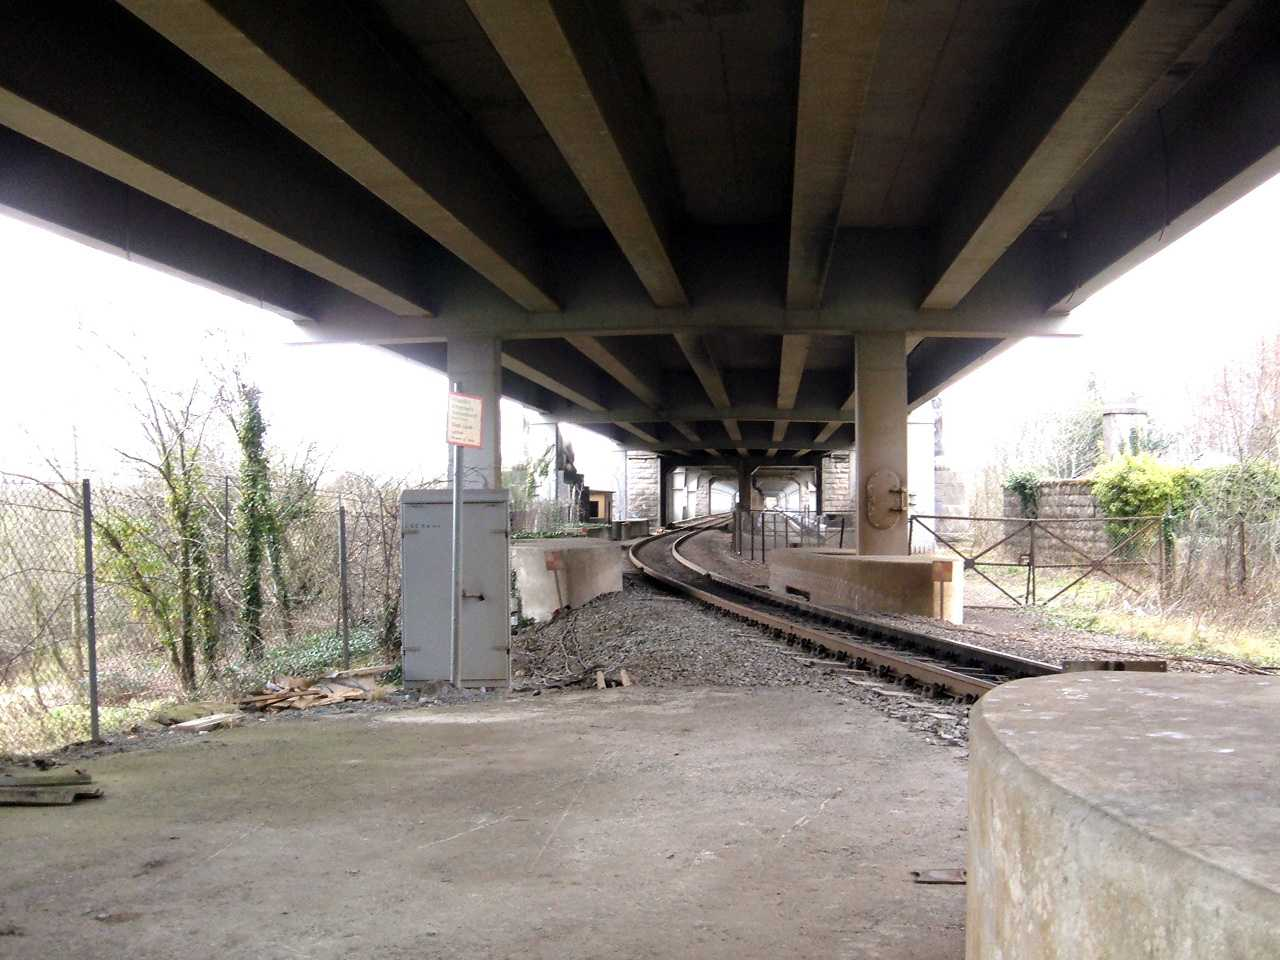 The original (and still used) rail line passing under the road